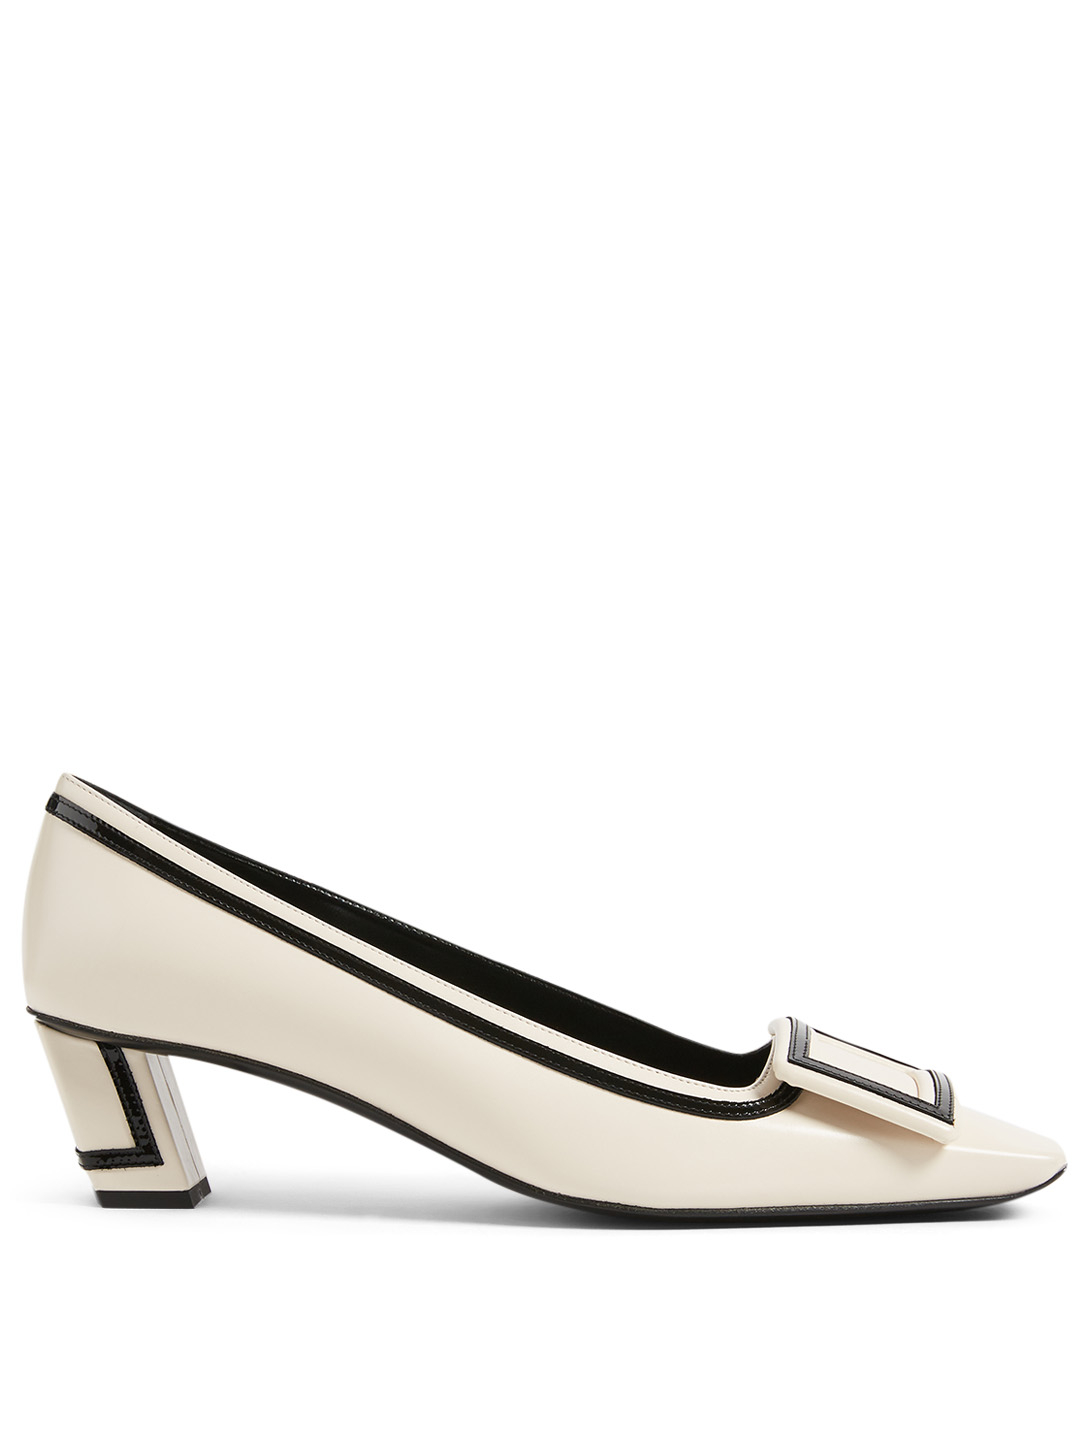 ROGER VIVIER Belle Vivier Graphic Leather Pumps Women's White